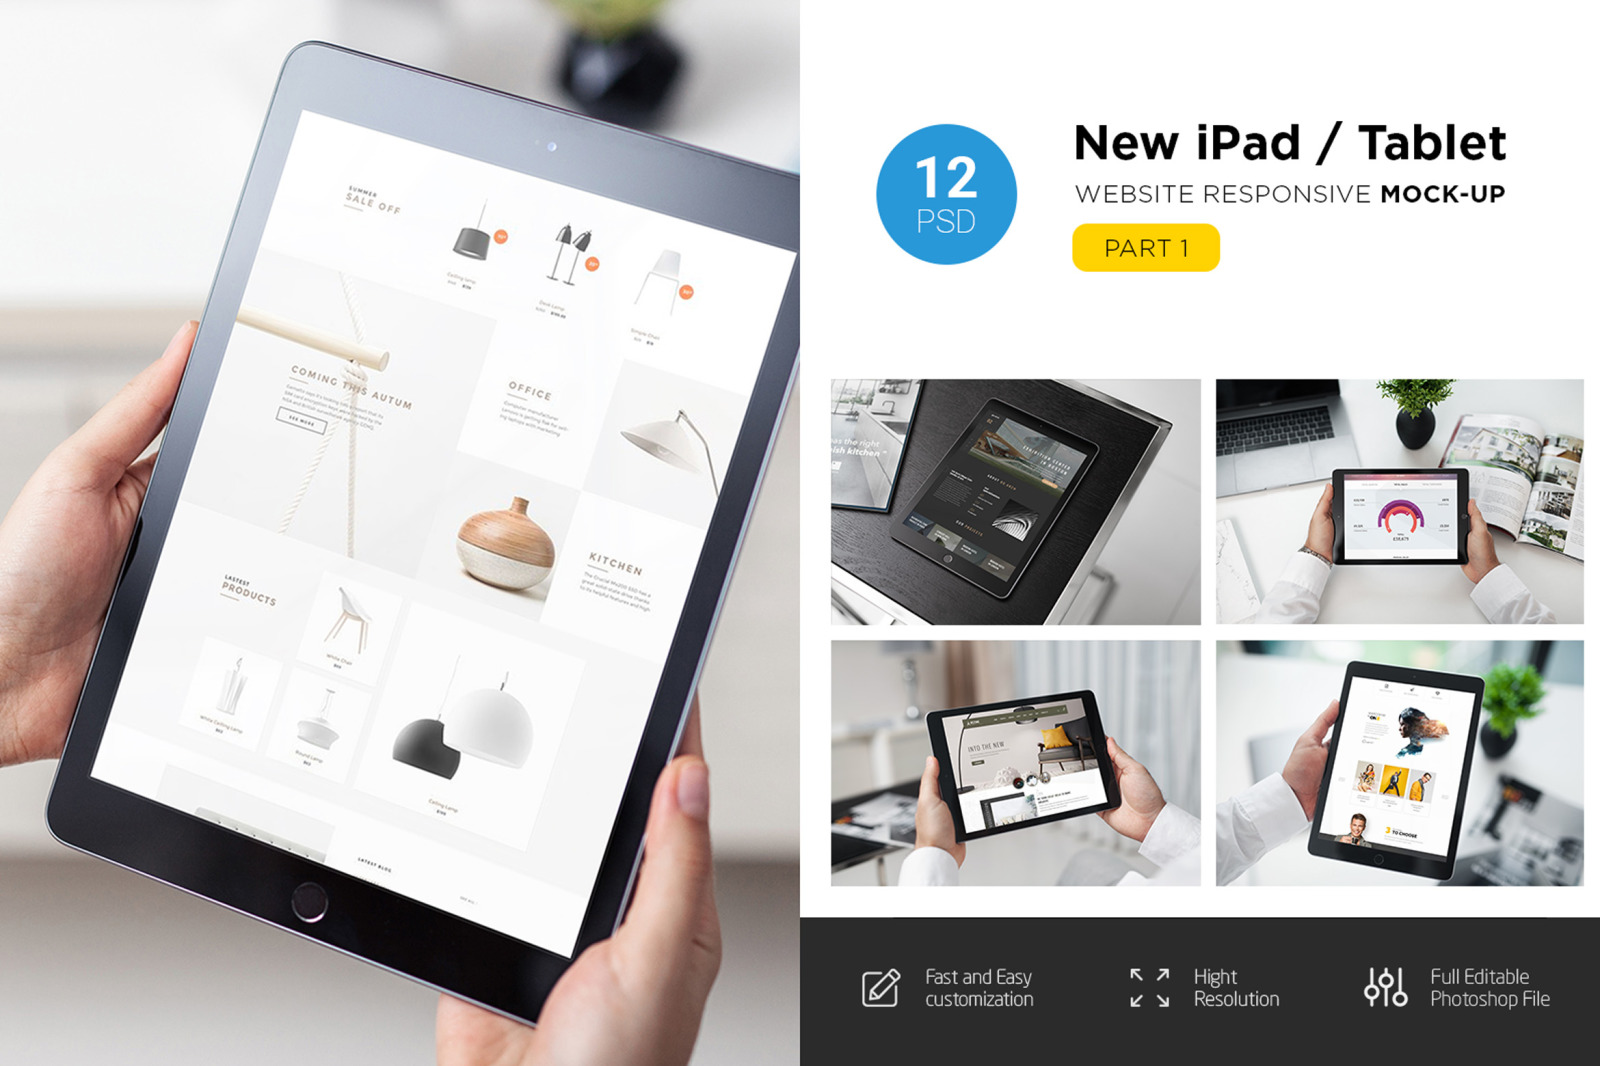 Download New Ipad Responsive Mockup In Device Mockups On Yellow Images Creative Store PSD Mockup Templates